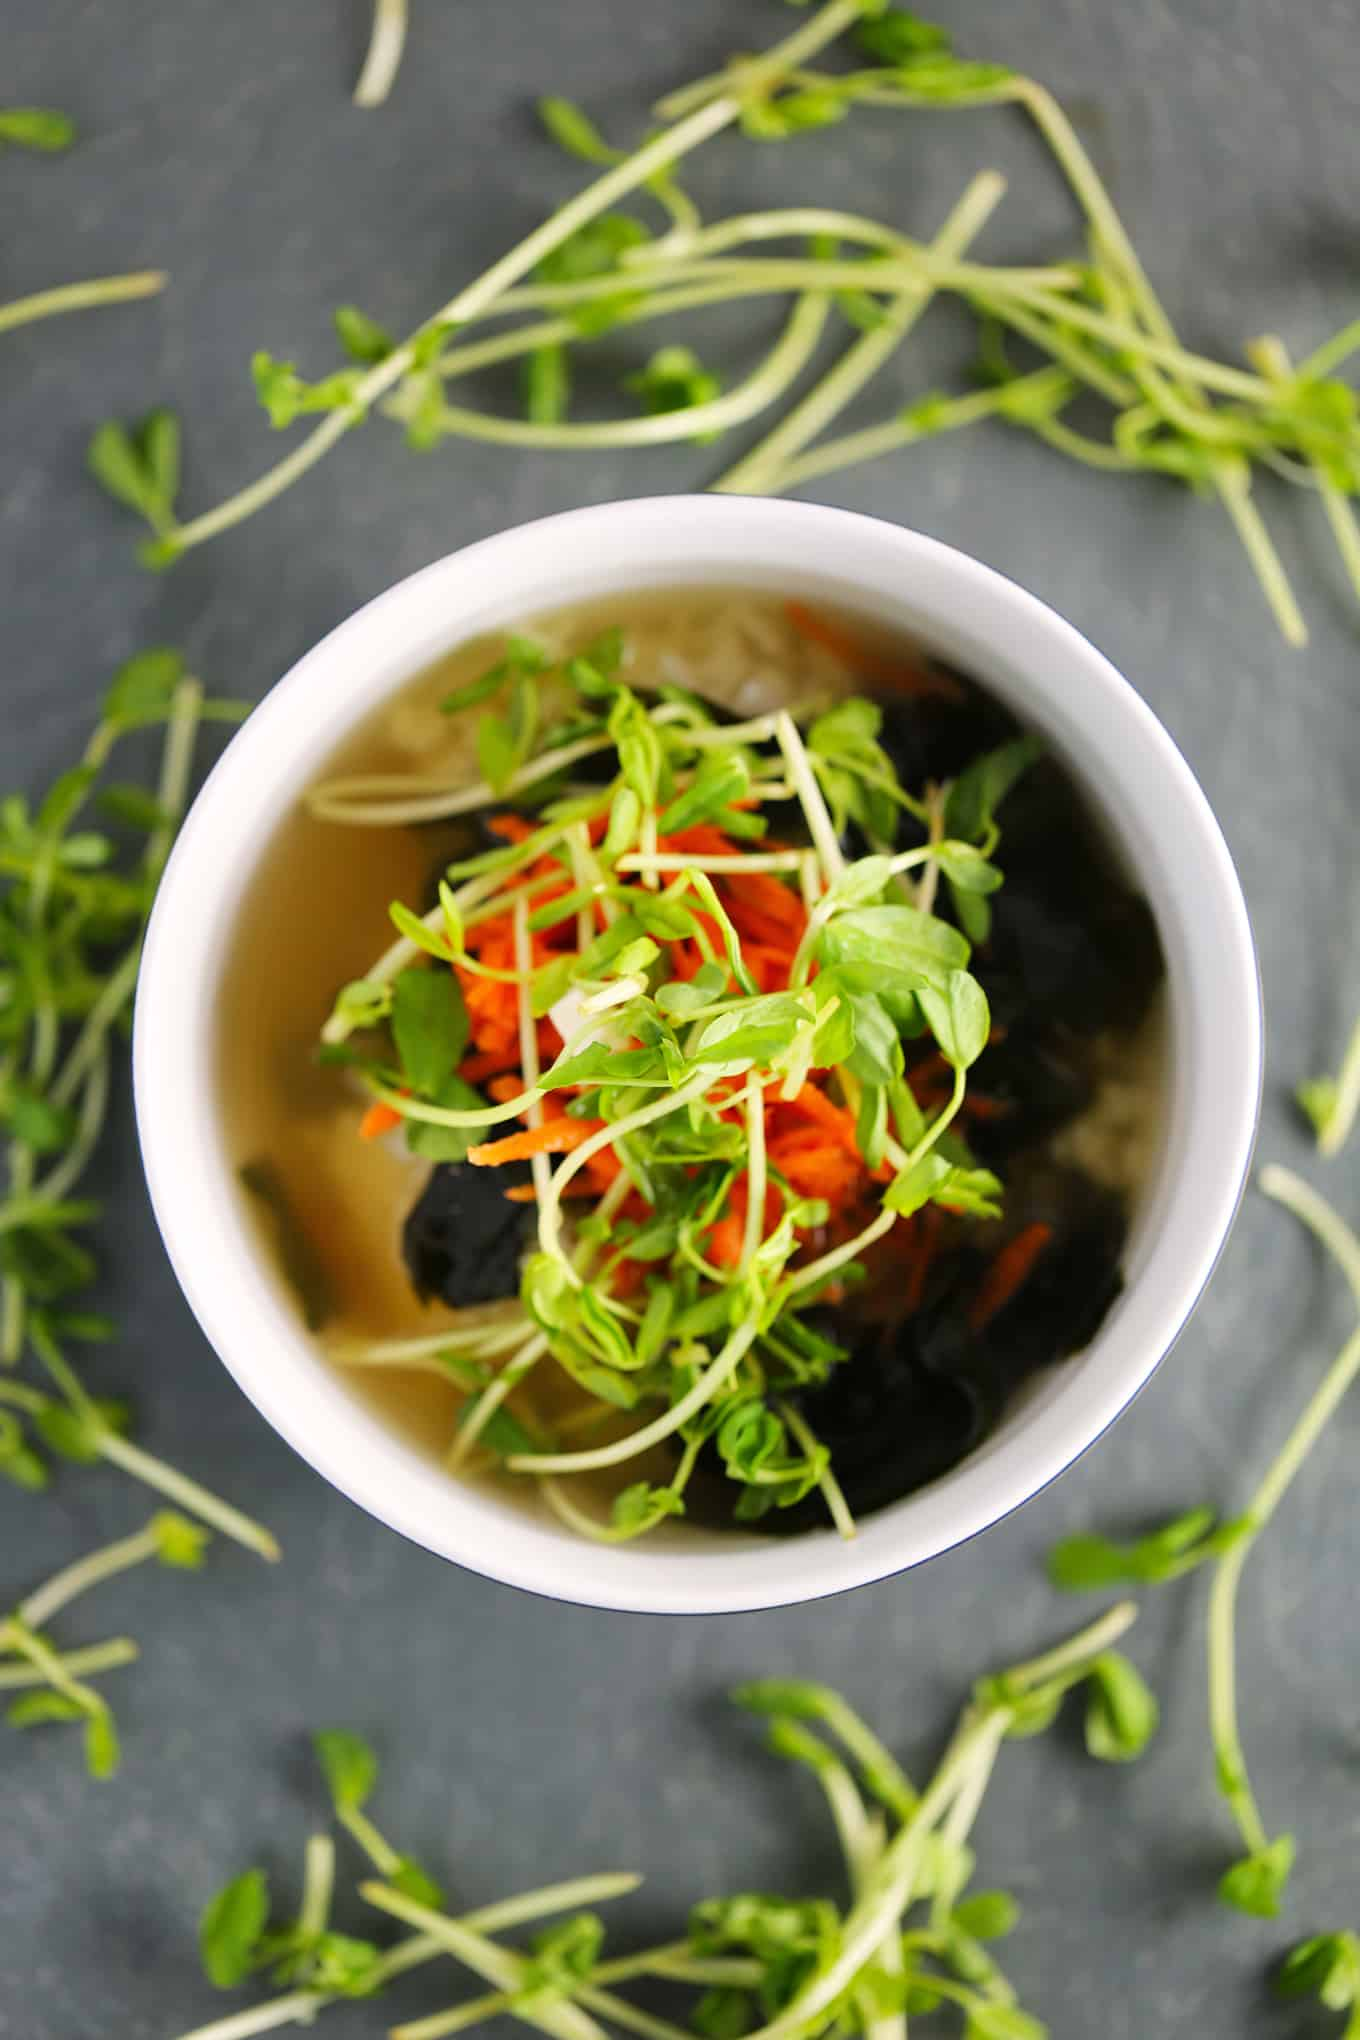 vegan miso soup in a bowl with sushi rice, pea shoots, and grated carrots